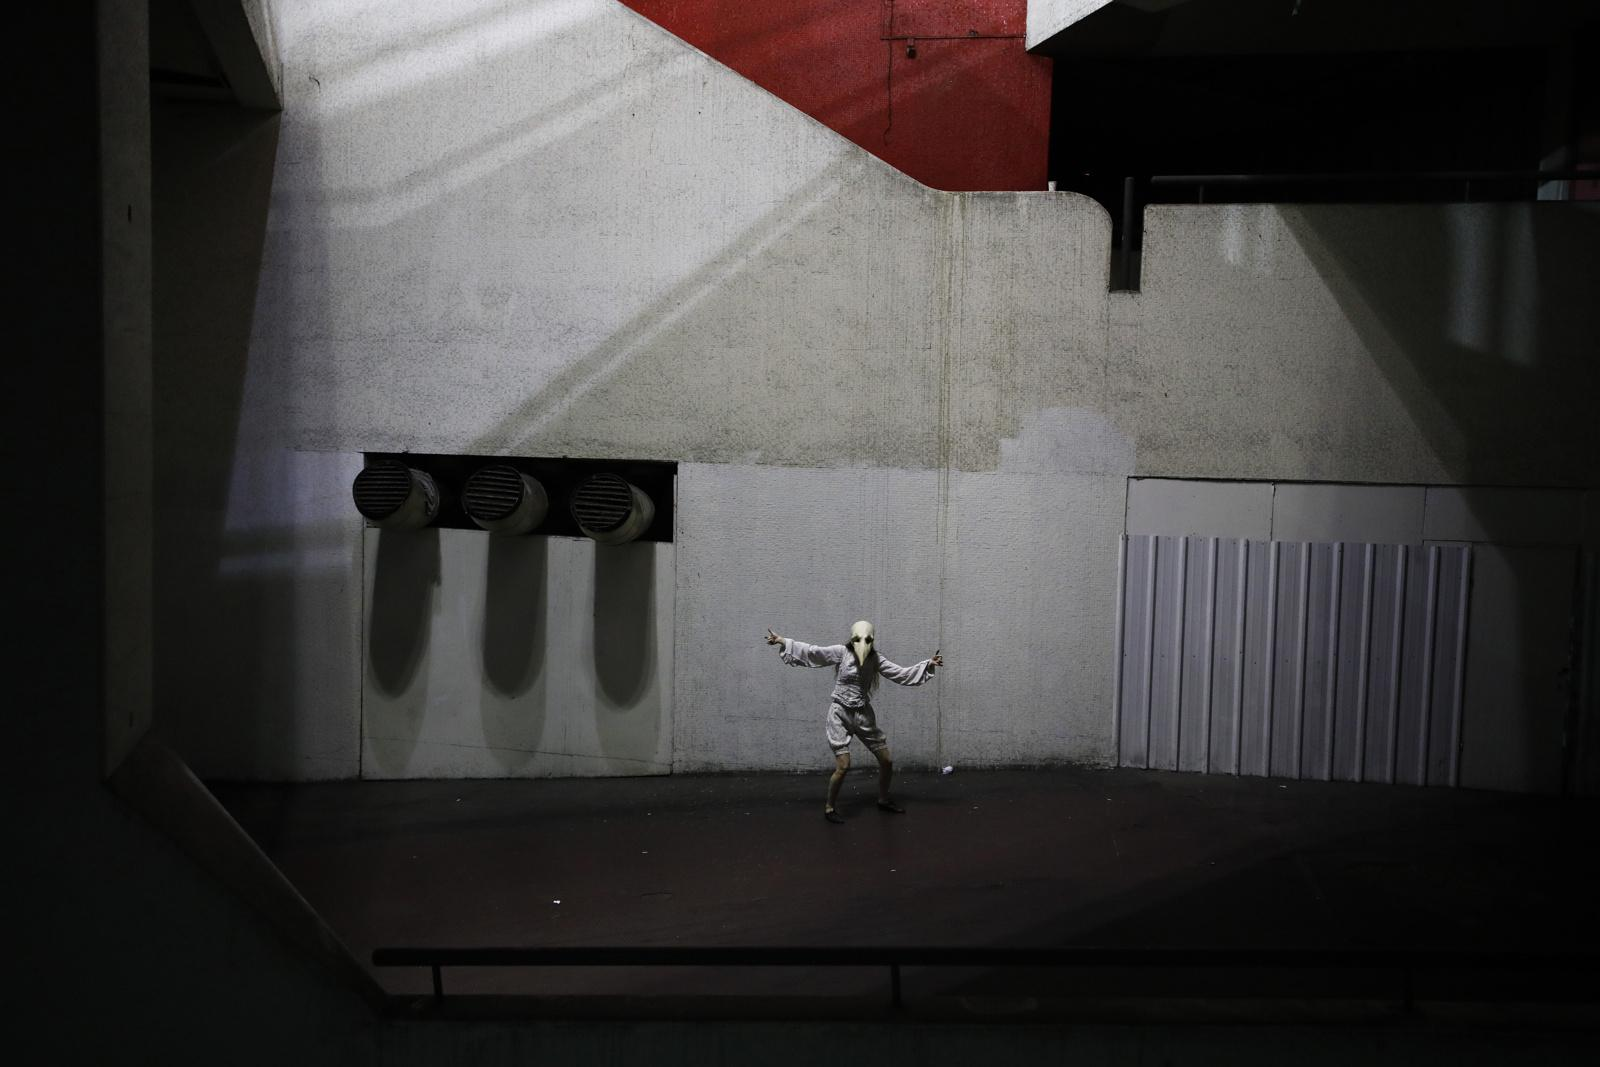 """Dana Forer, 40, an actress and manager of the Mystorin Theatre Ensemble, performs in the group's show """"Seven,"""" a site-specific act that uses all seven floors of the Central Bus Station in Tel Aviv, Israel, May 25, 2019. """"The Central Bus Station is a playground for imagination,"""" Forer said. """"I feel full of joy and creativity when we light up the dark spaces with our performance."""""""